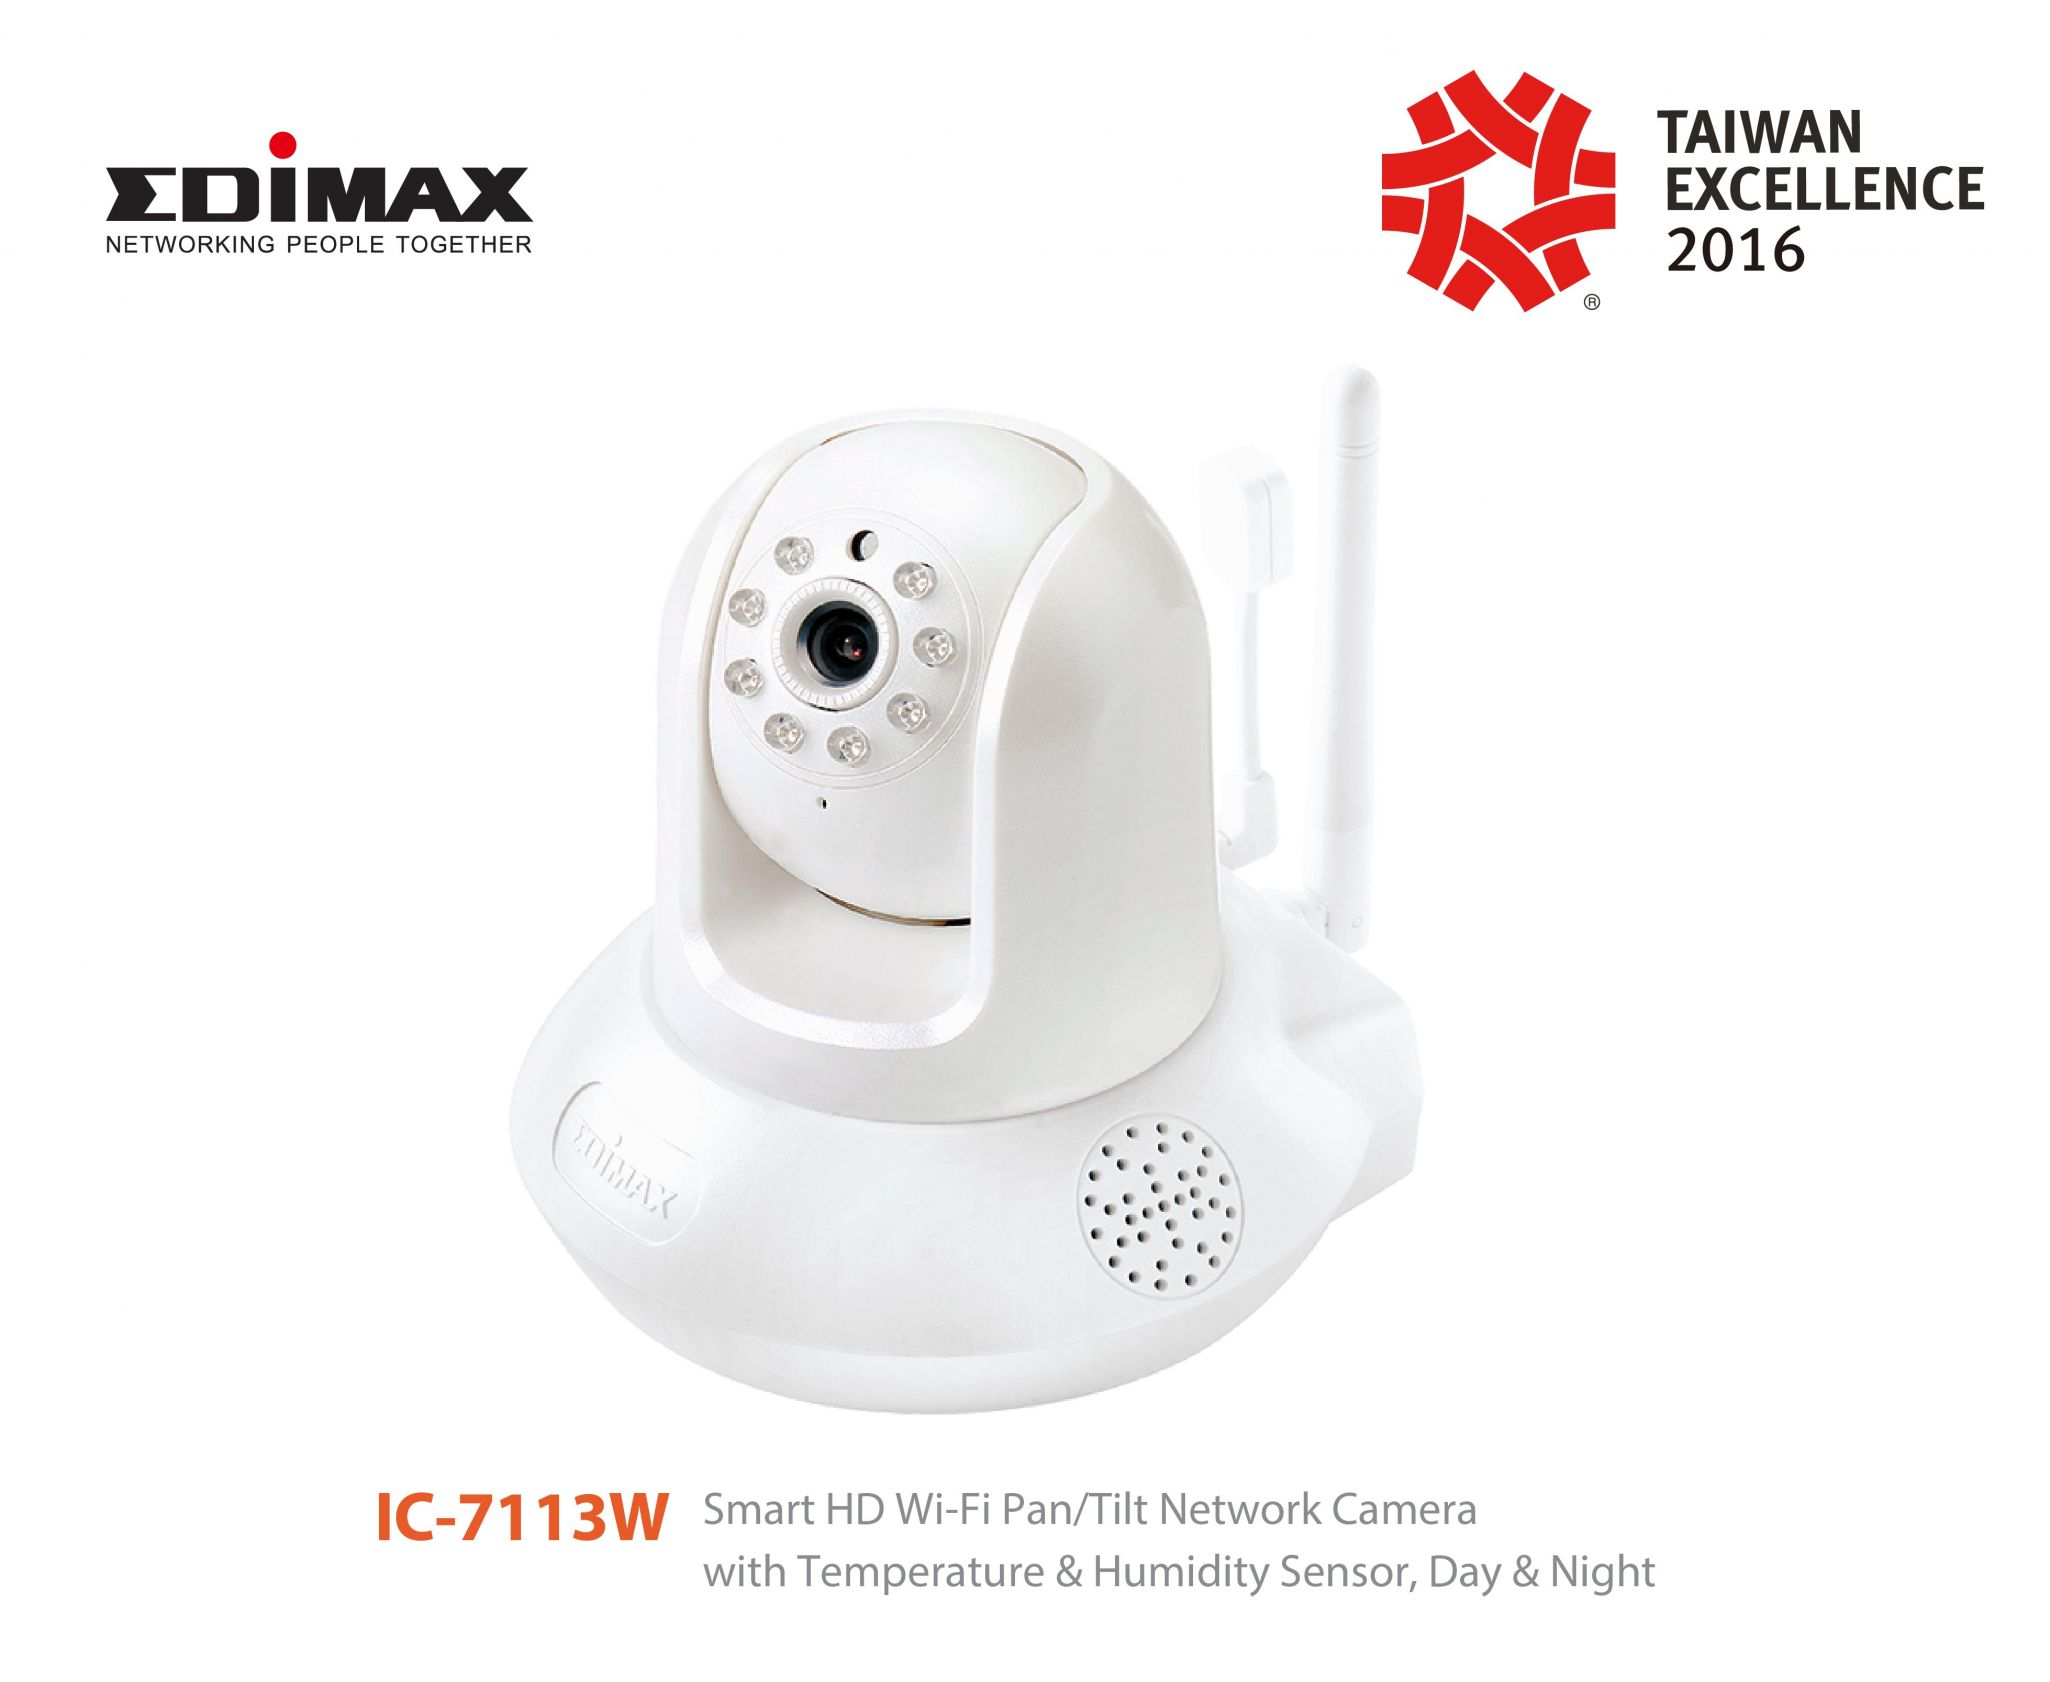 IC-7113W Taiwan Excellence 2016